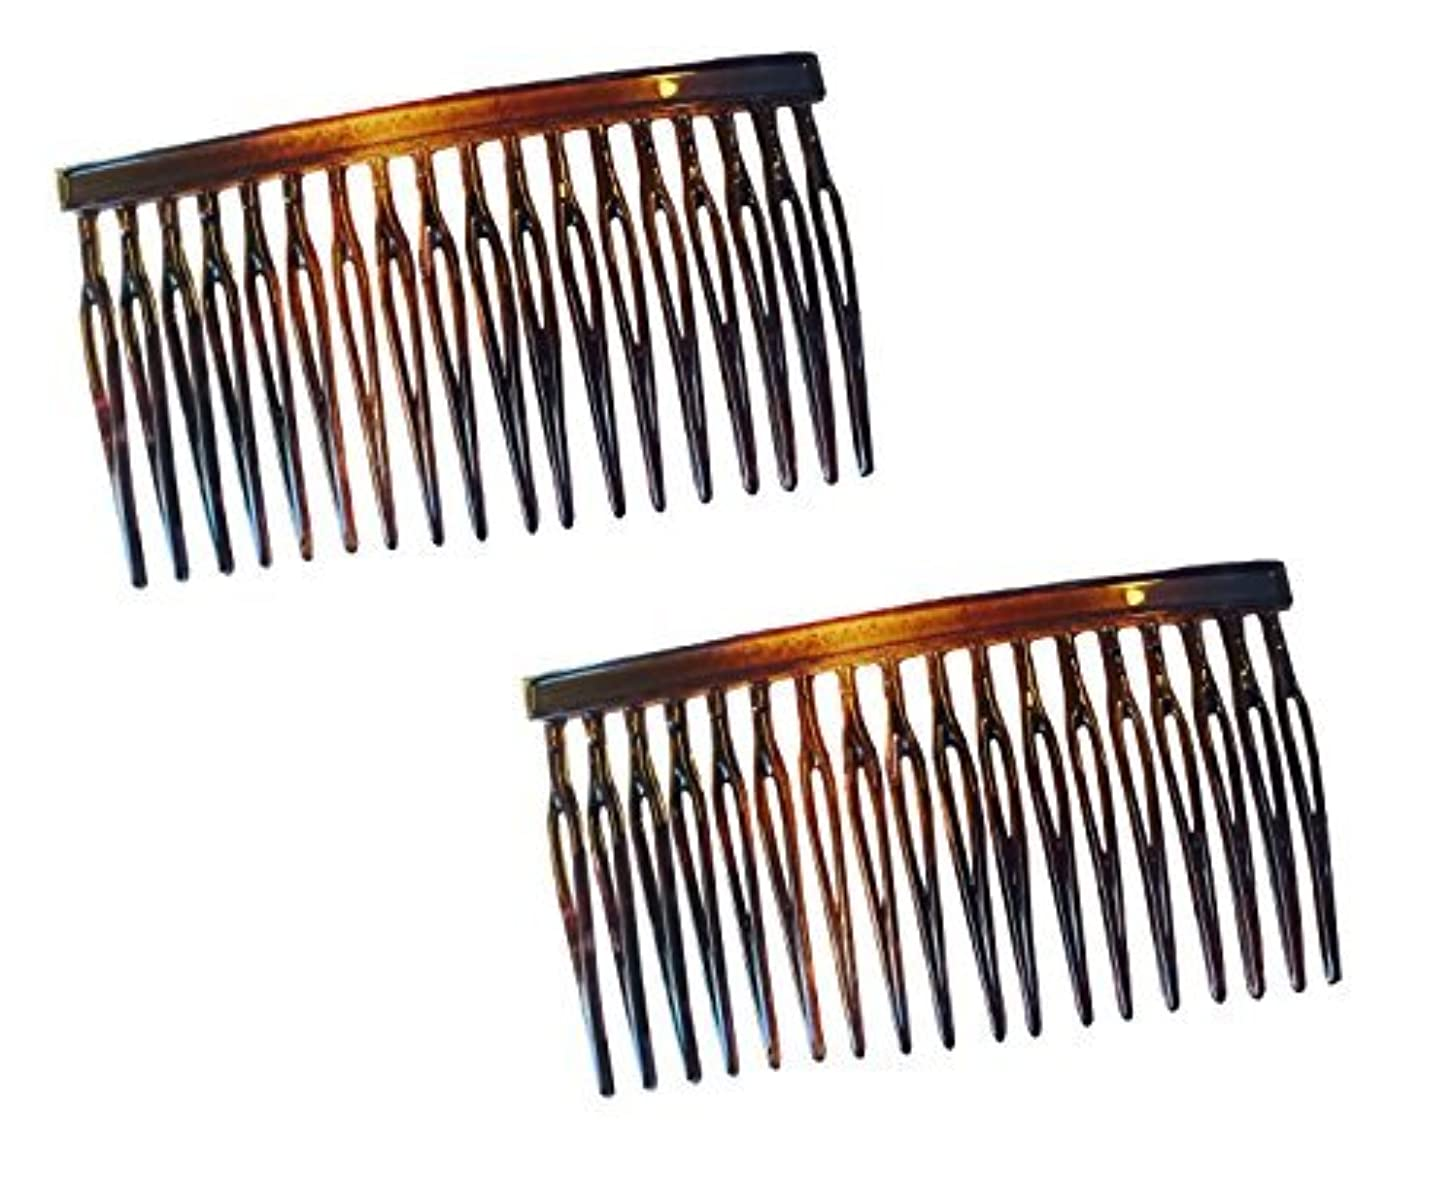 ミリメーター習慣部分的にParcelona French Light 2 Pieces Small Glossy Celluloid Shell Good Grip Updo 18 Teeth Side Hair Comb Combs [並行輸入品]